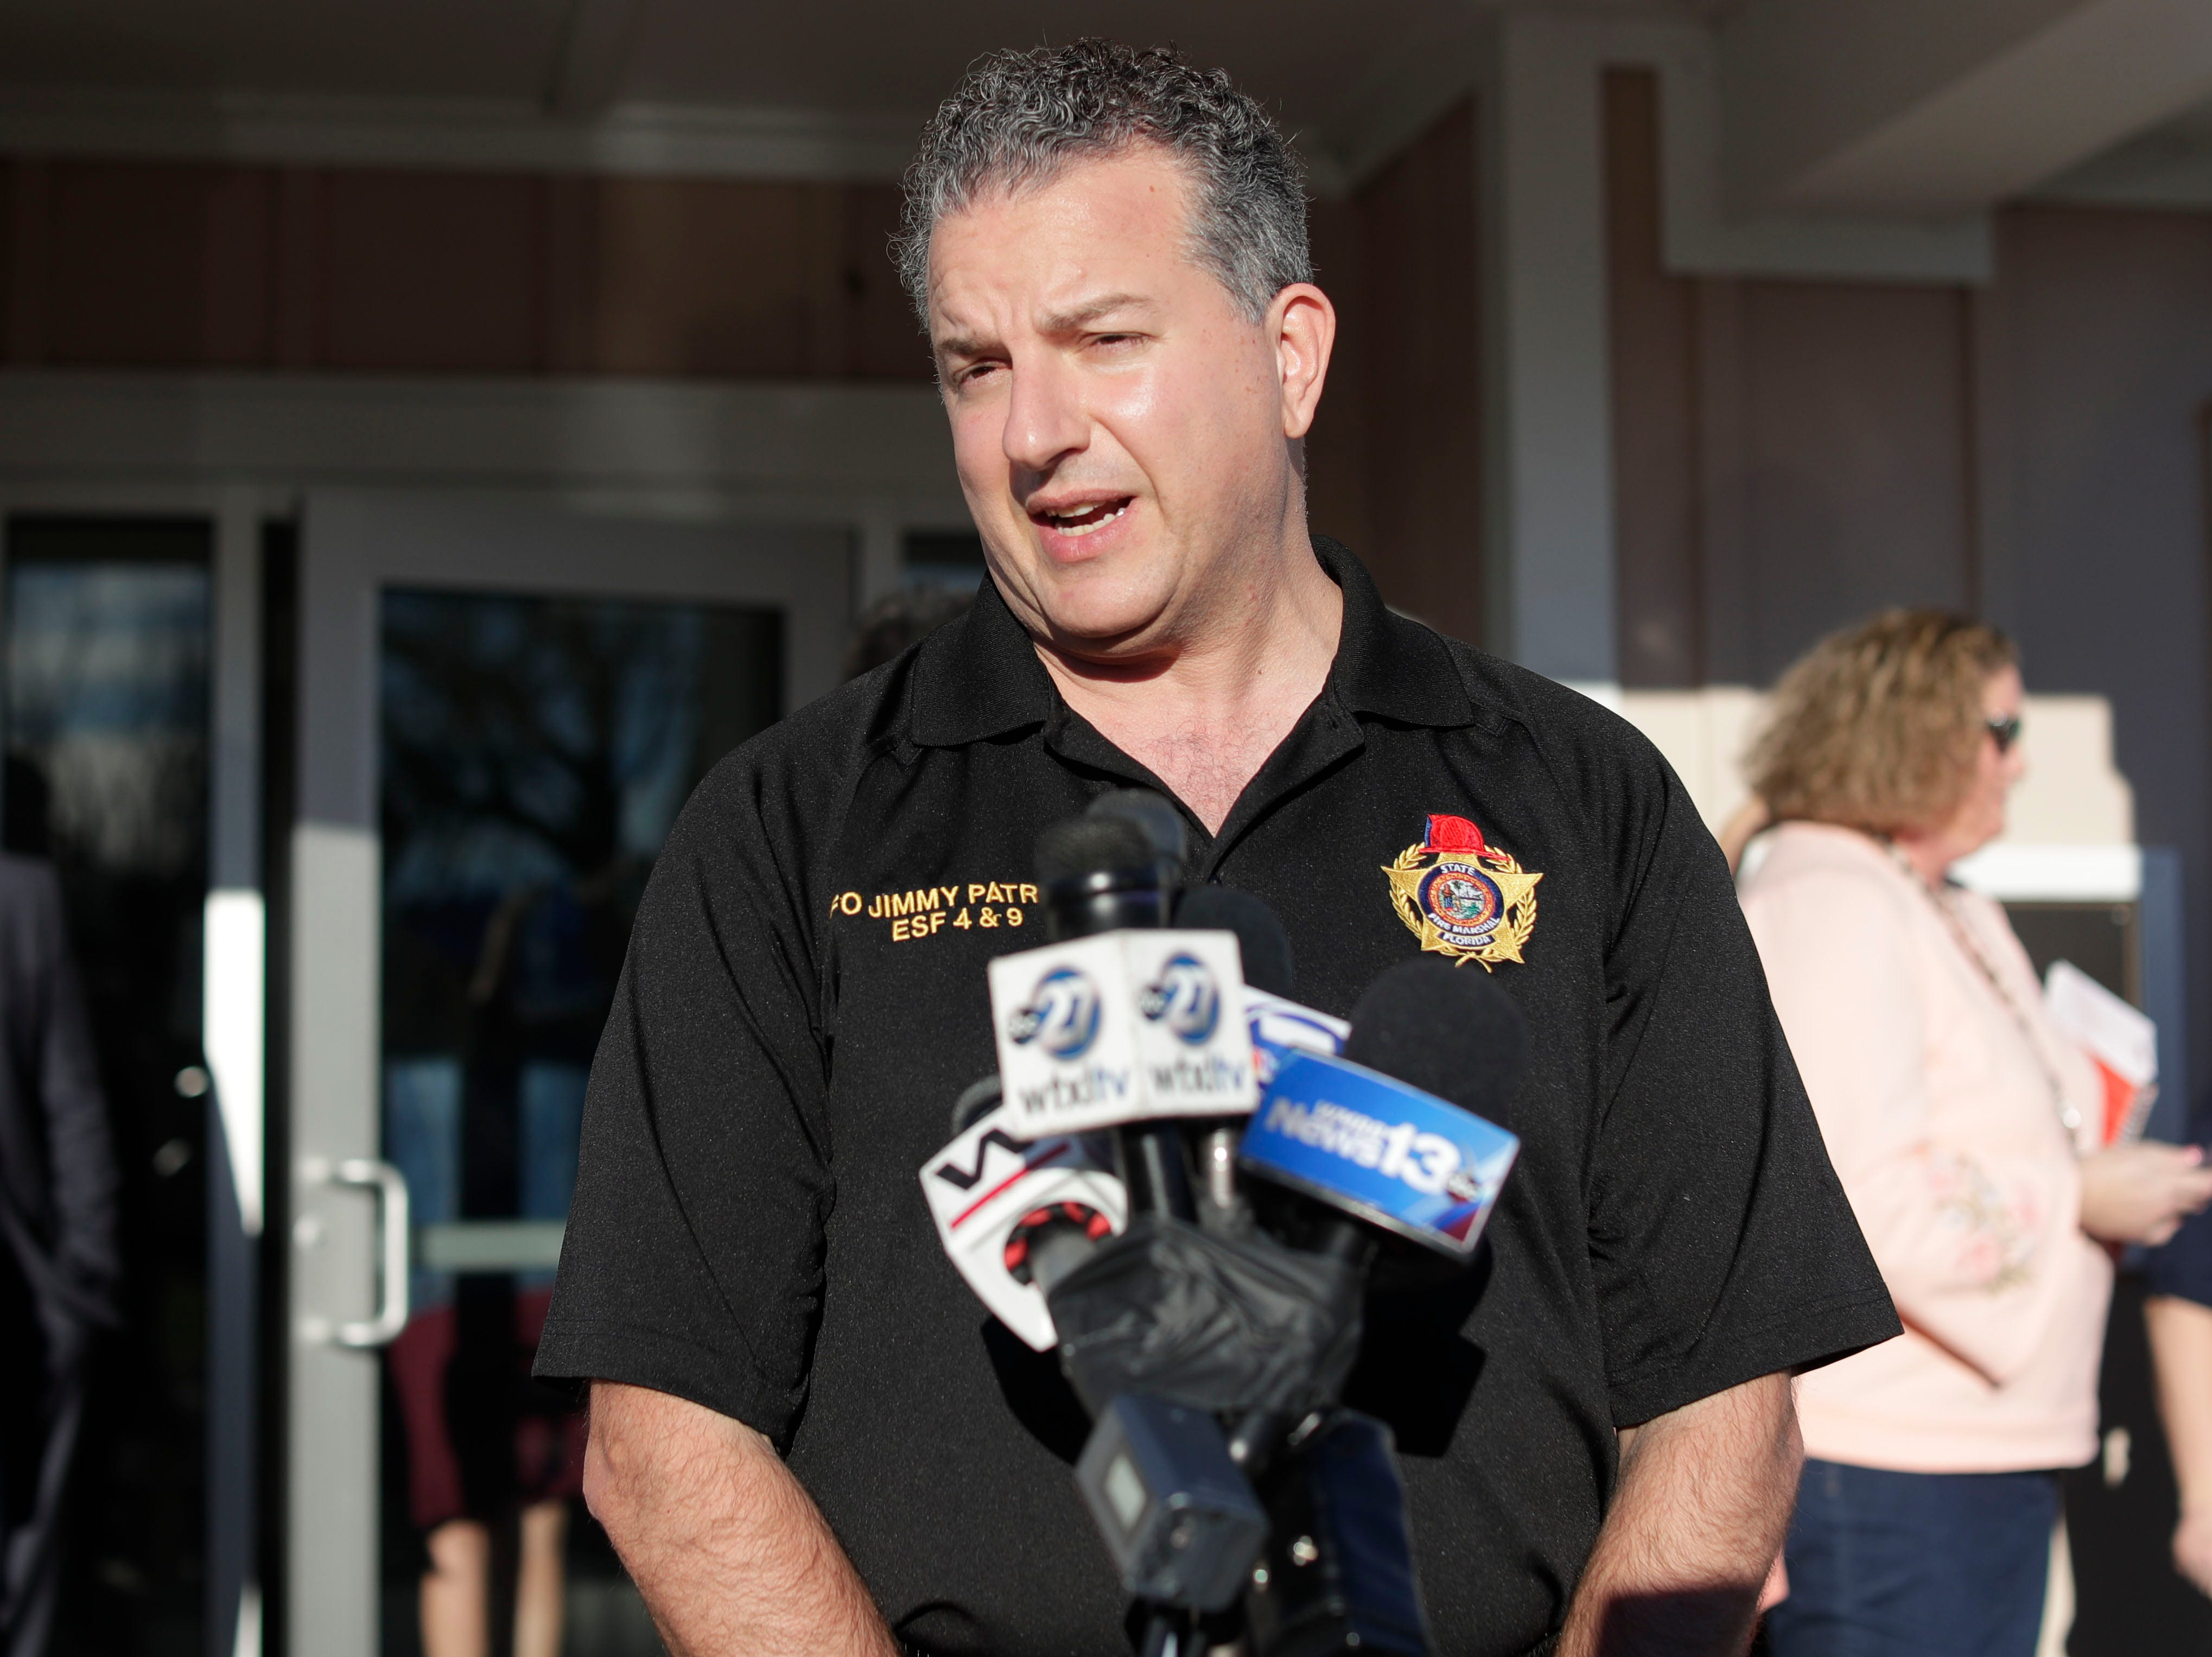 Chief Financial Officer Jimmy Patronis speaks with the media about the steps needed to take in an effort to rebuild Mexico Beach, Wednesday, Jan. 9, 2019. Hurricane Michael left the panhandle in a total disarray on Oct. 10, 2018.